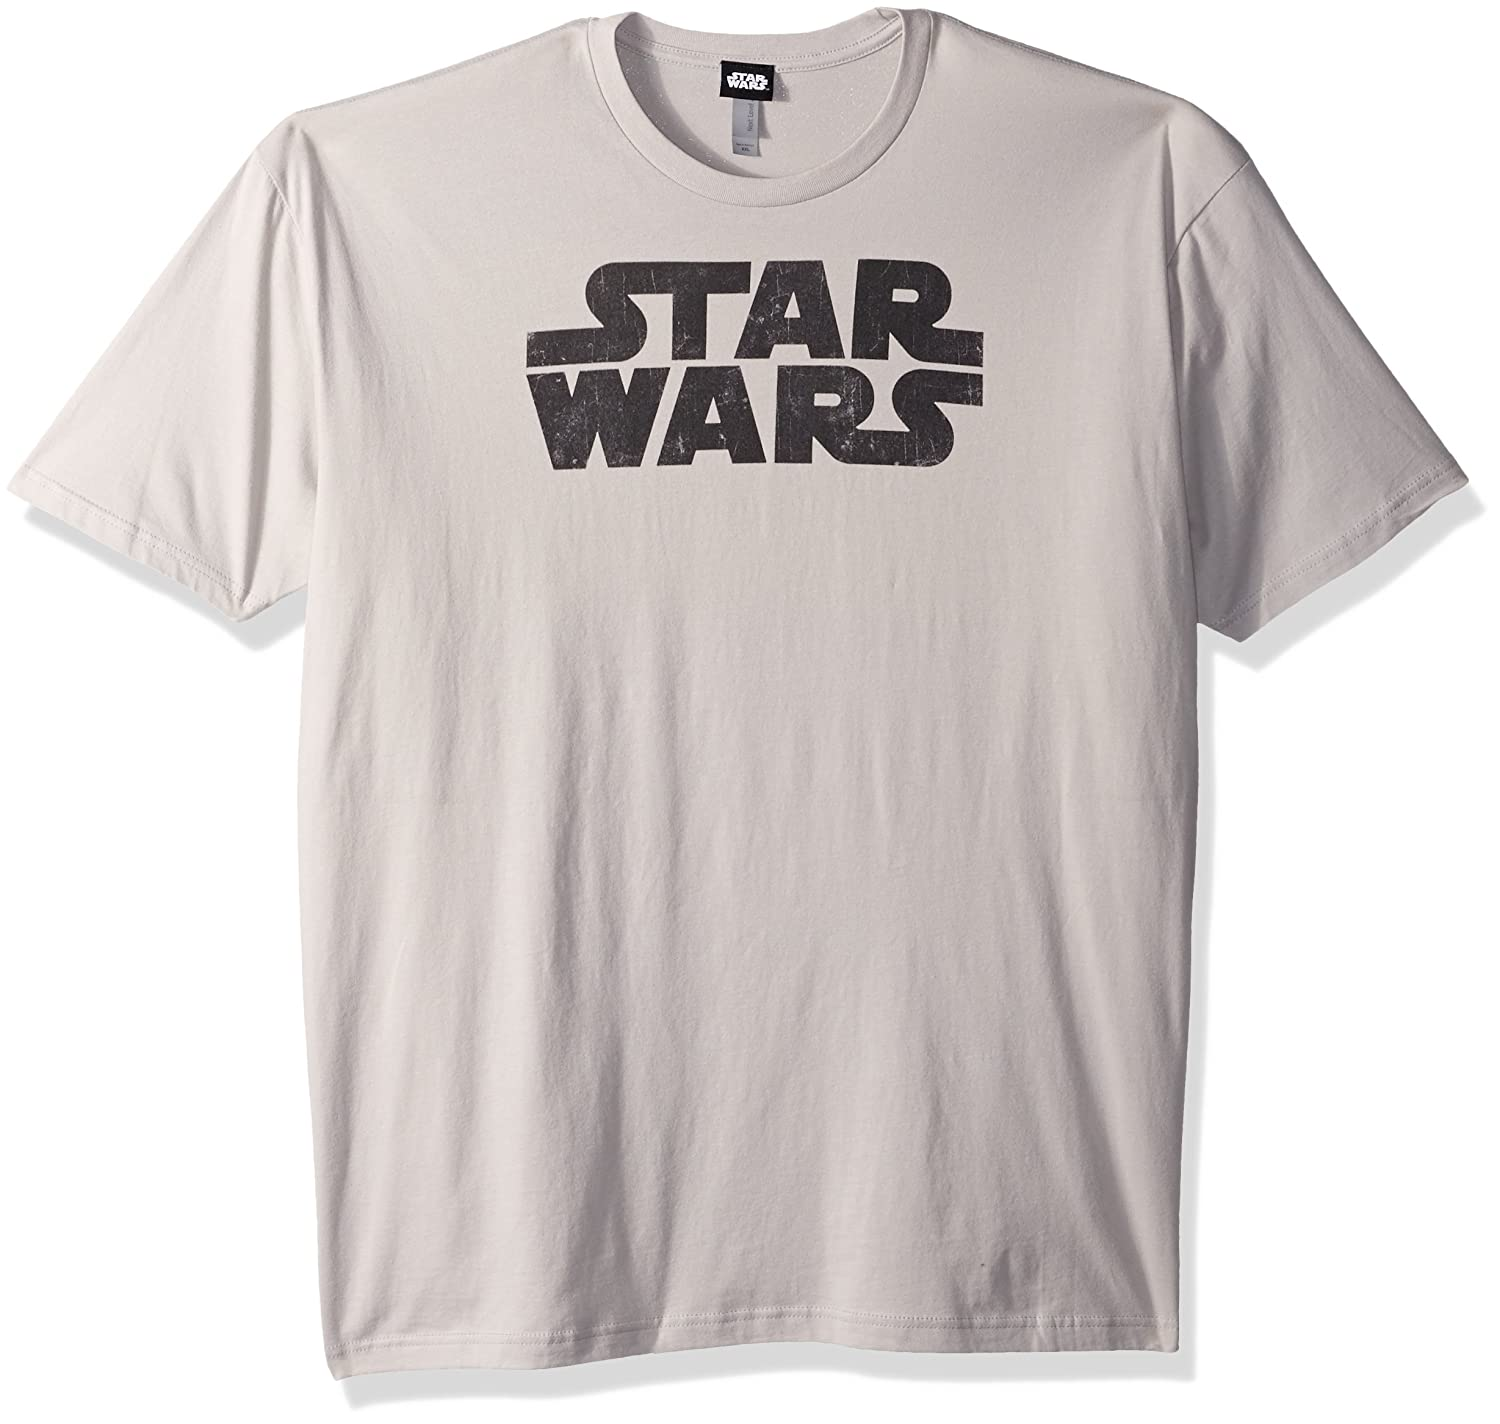 Star Wars Mens Simplest Logo T Shirt Clothing Tendencies Tshirt Monday To Long Navy Xxl